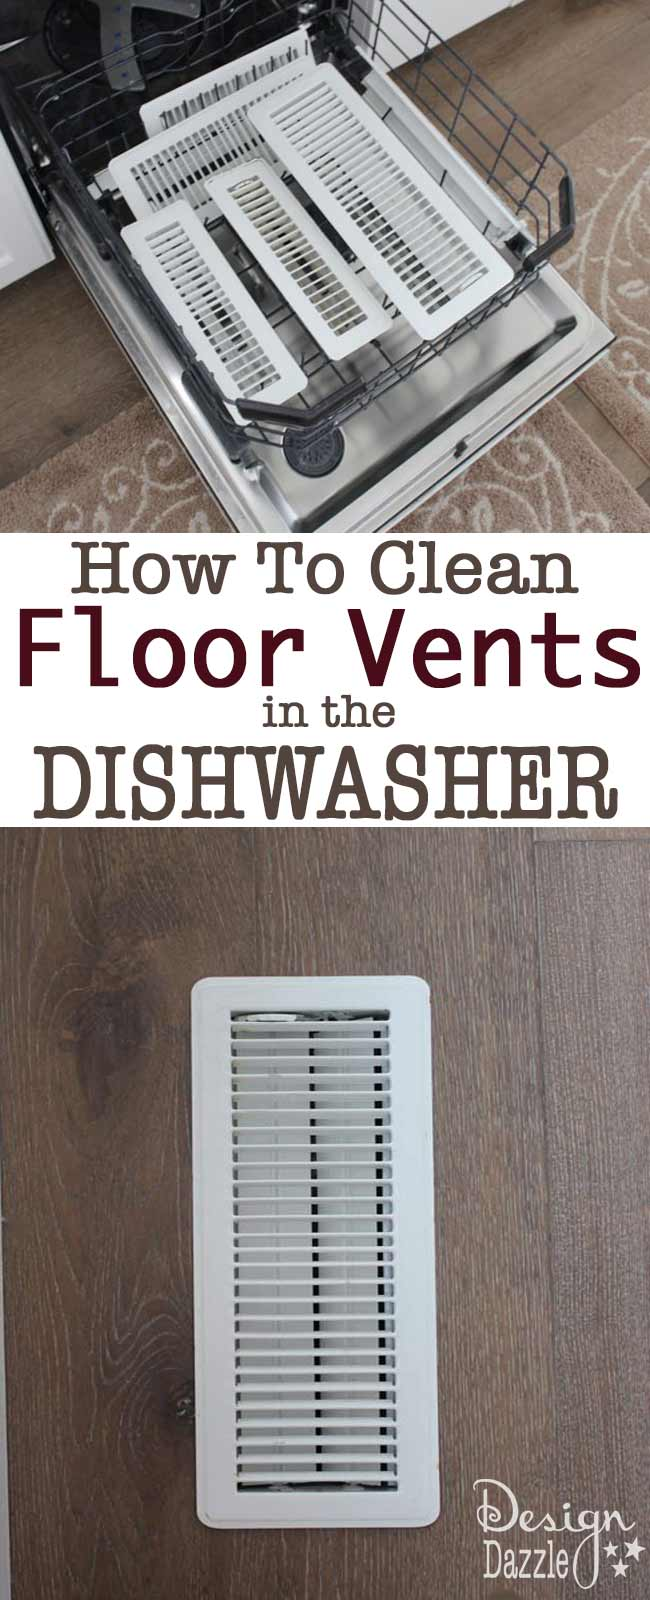 How To Clean Floor And Ceiling Vents   In The Dishwasher. How To Clean Floor And Ceiling Vents   In The Dishwasher    Design